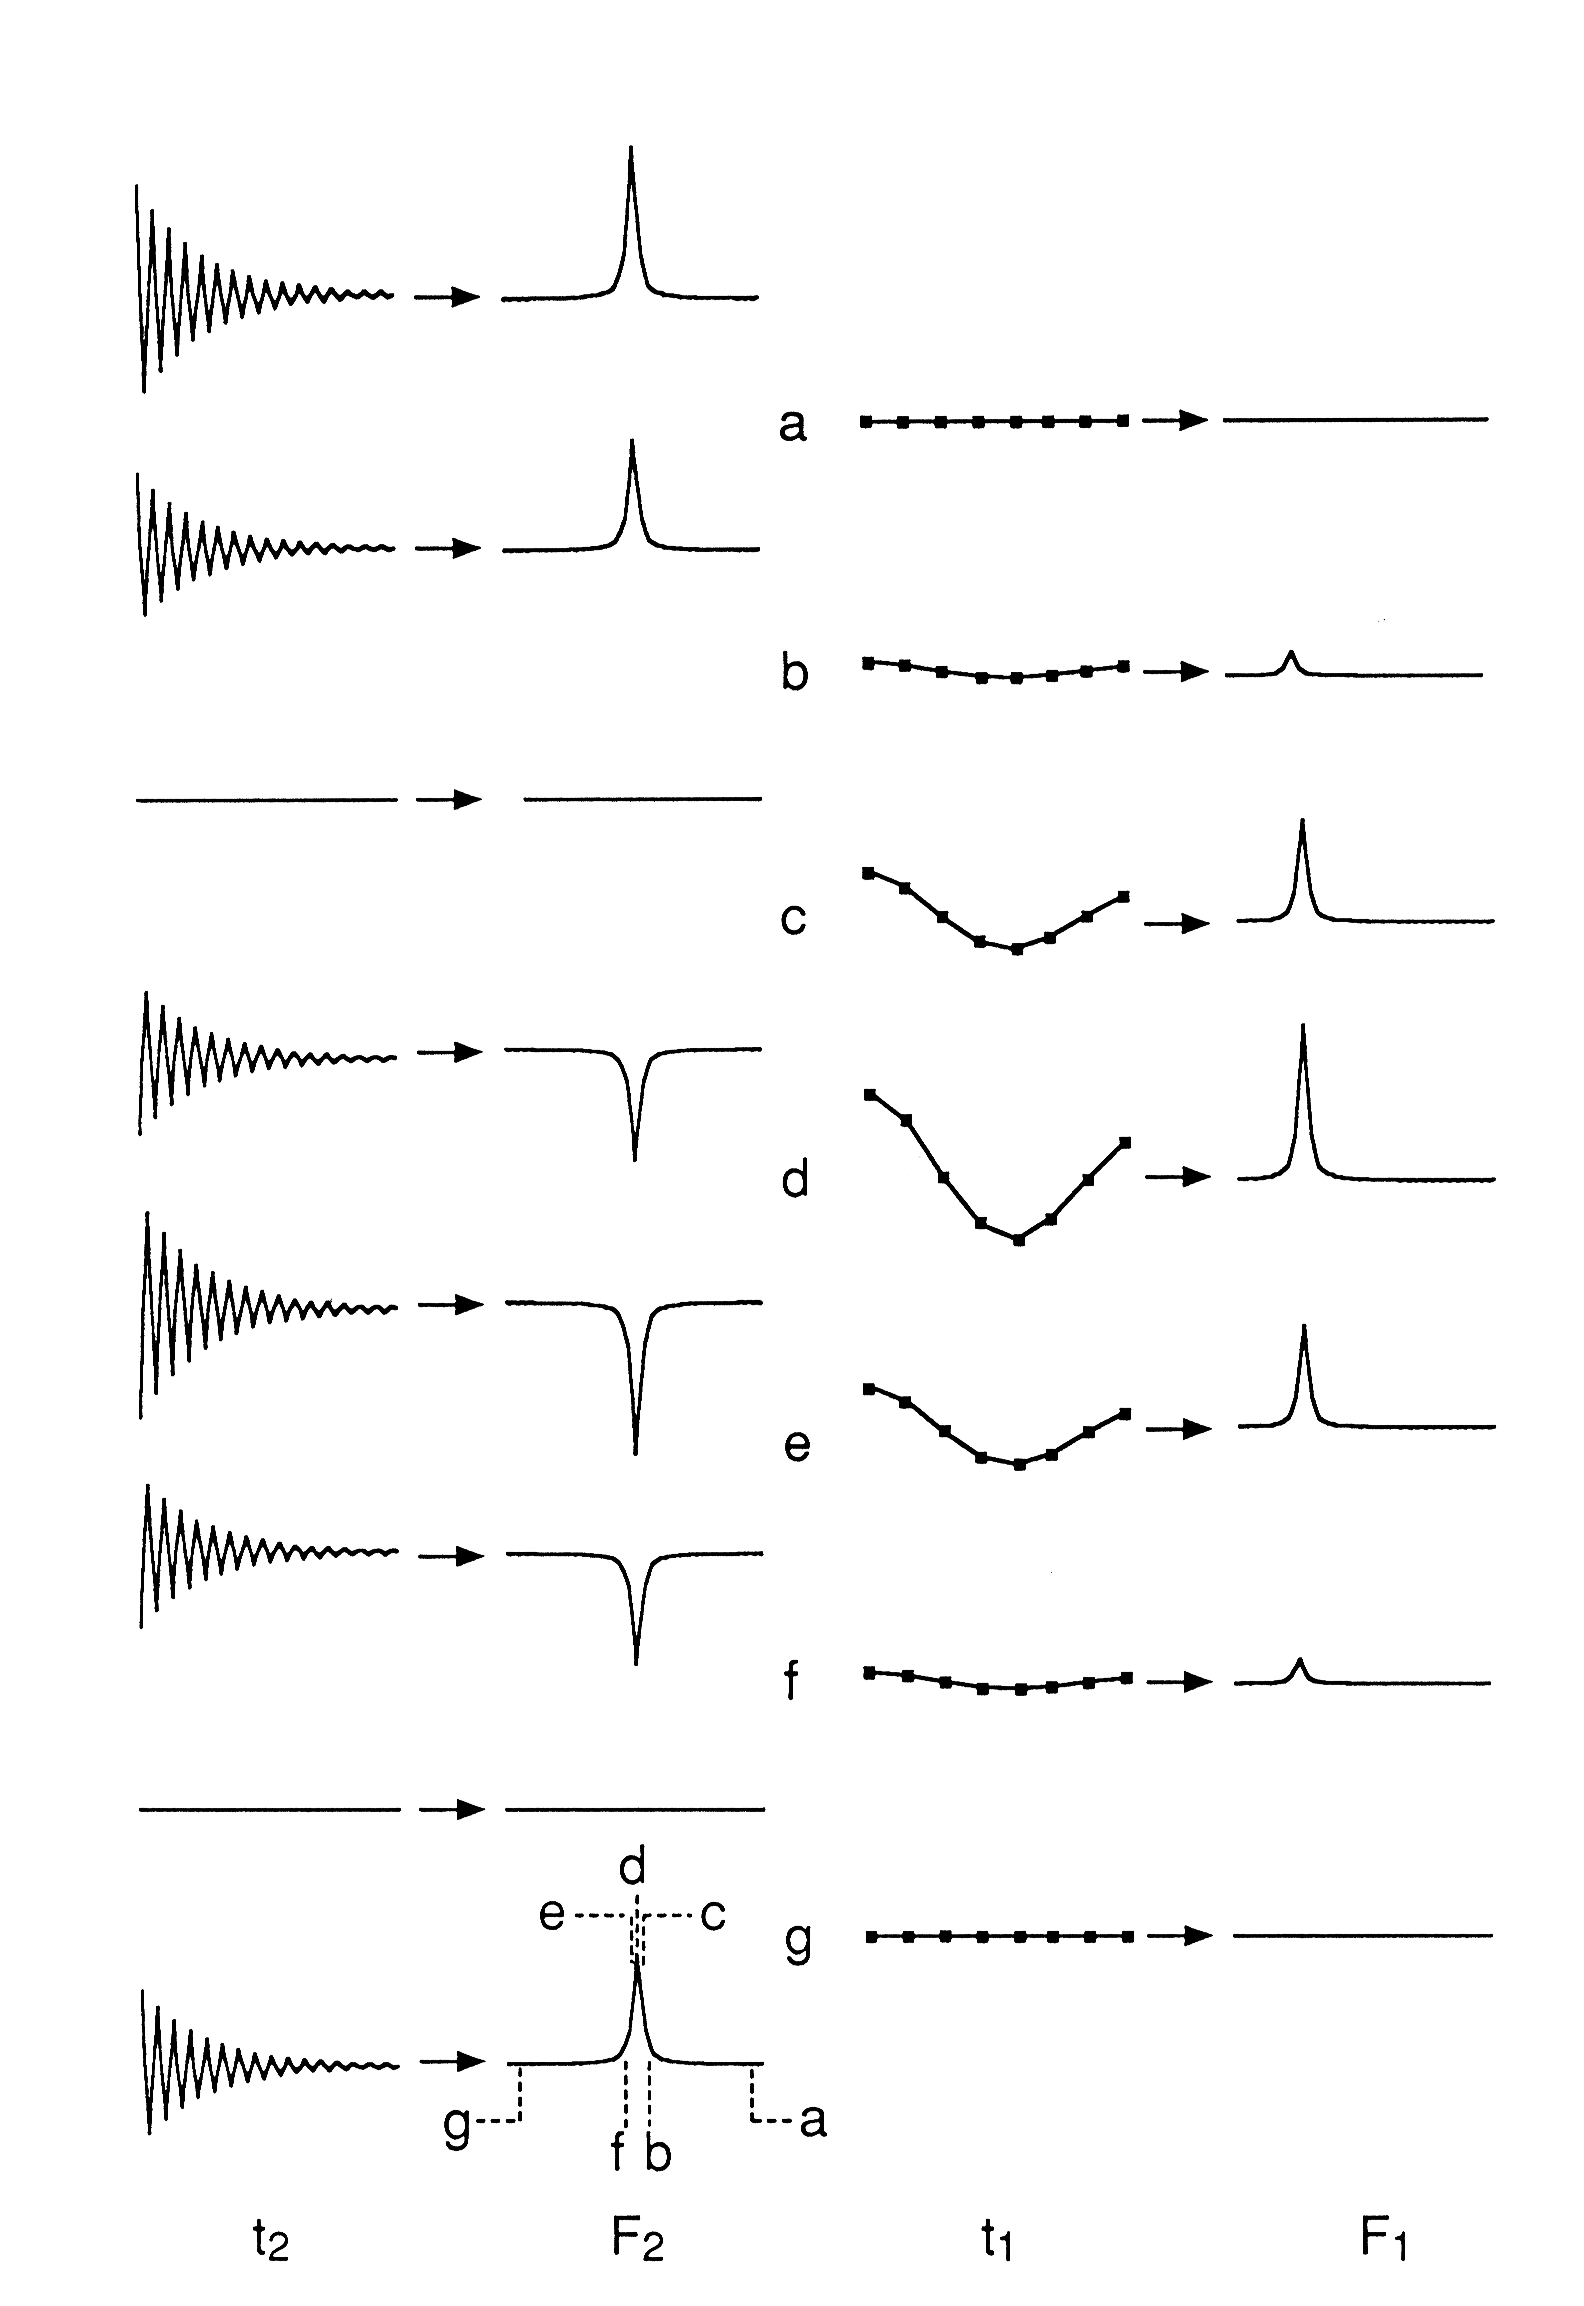 on. This modulation of the amplitude of the observed signal by the t evolution is illustrated in the figure below.